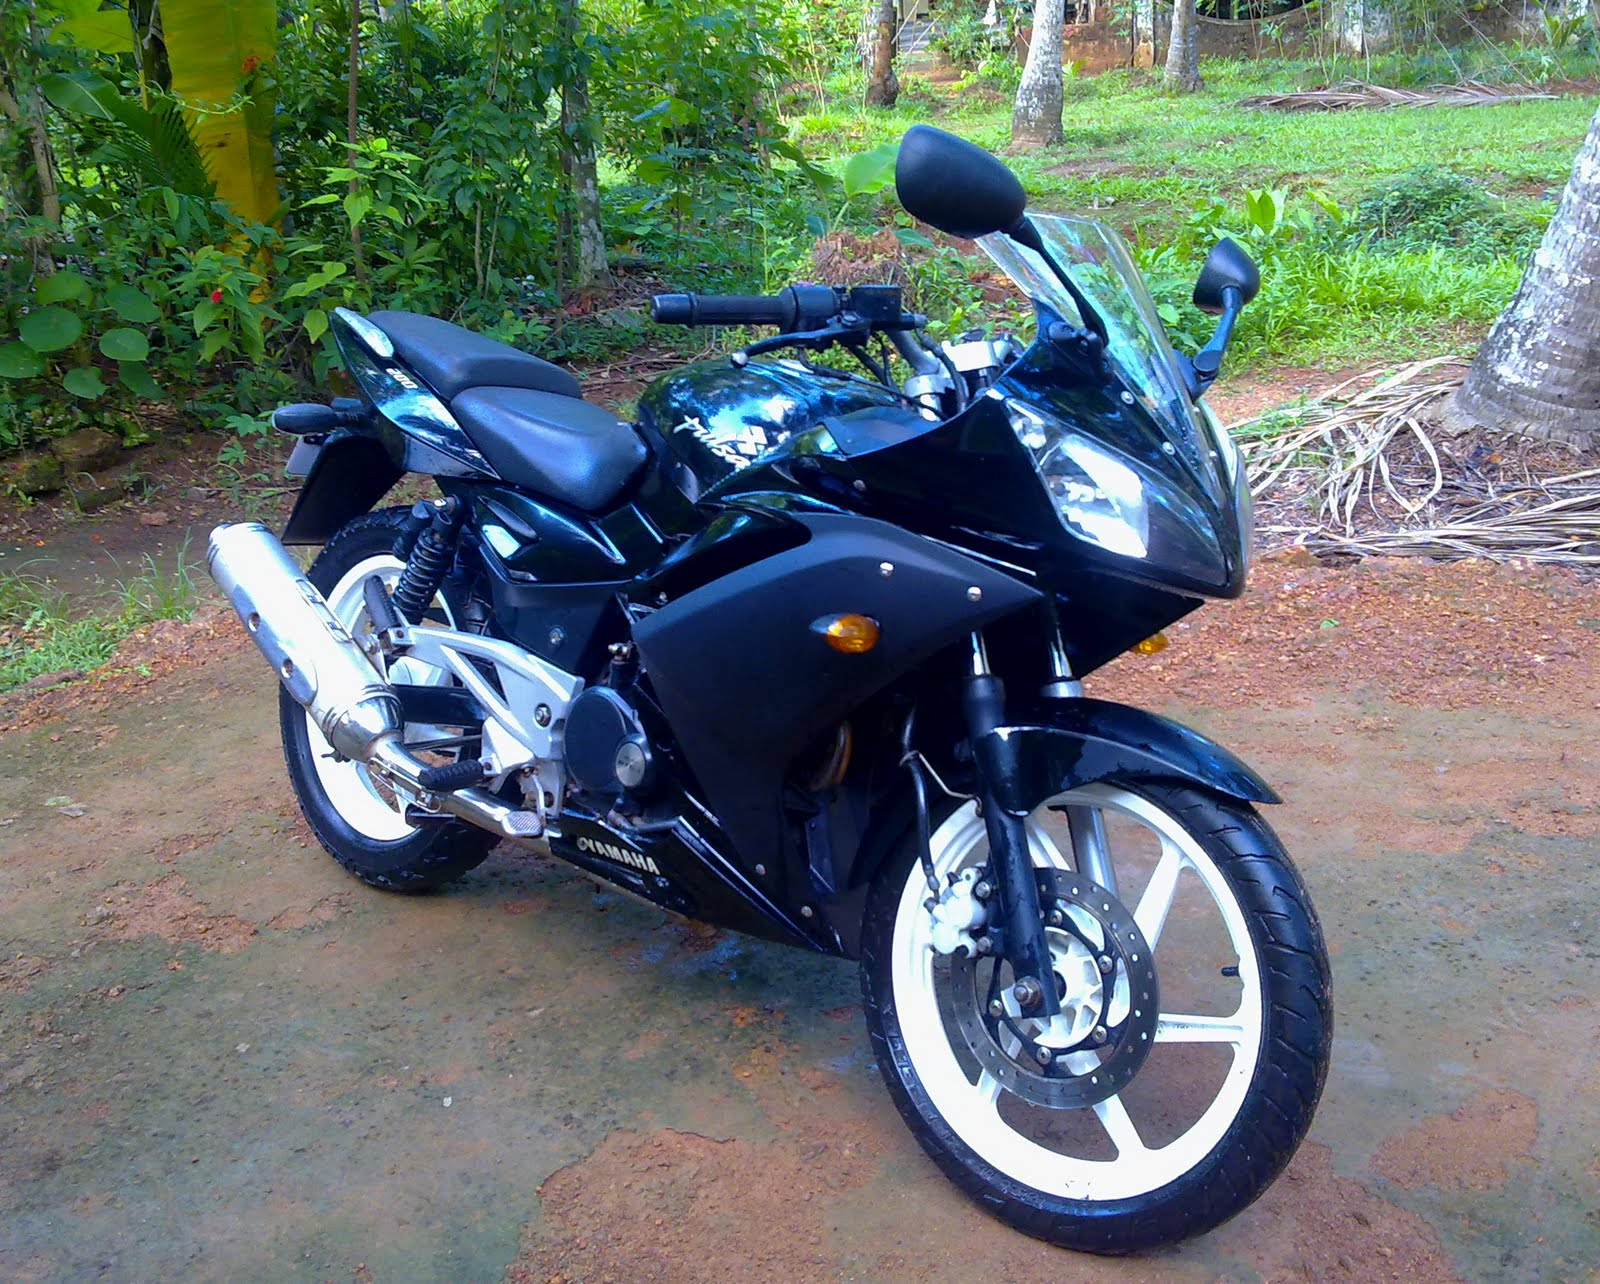 2008 Model Pulsar 200 modified to r15  My modified Pulsar 200